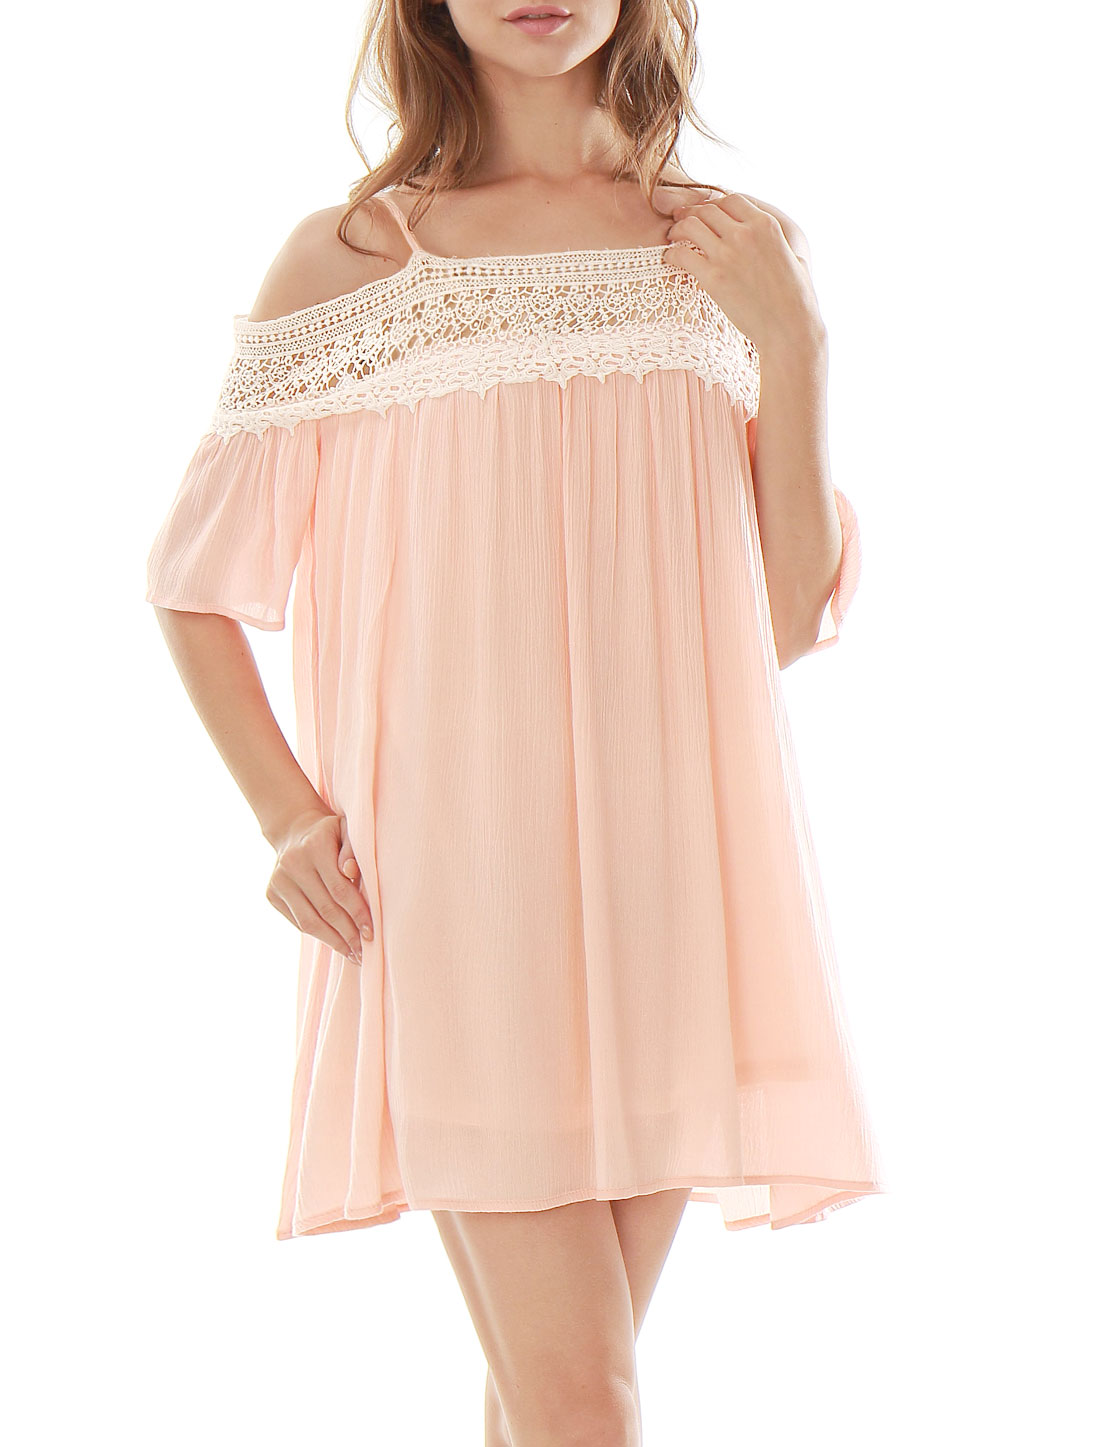 Women Crochet Panel Spaghetti Strap Cold Shoulder Dress Pink S